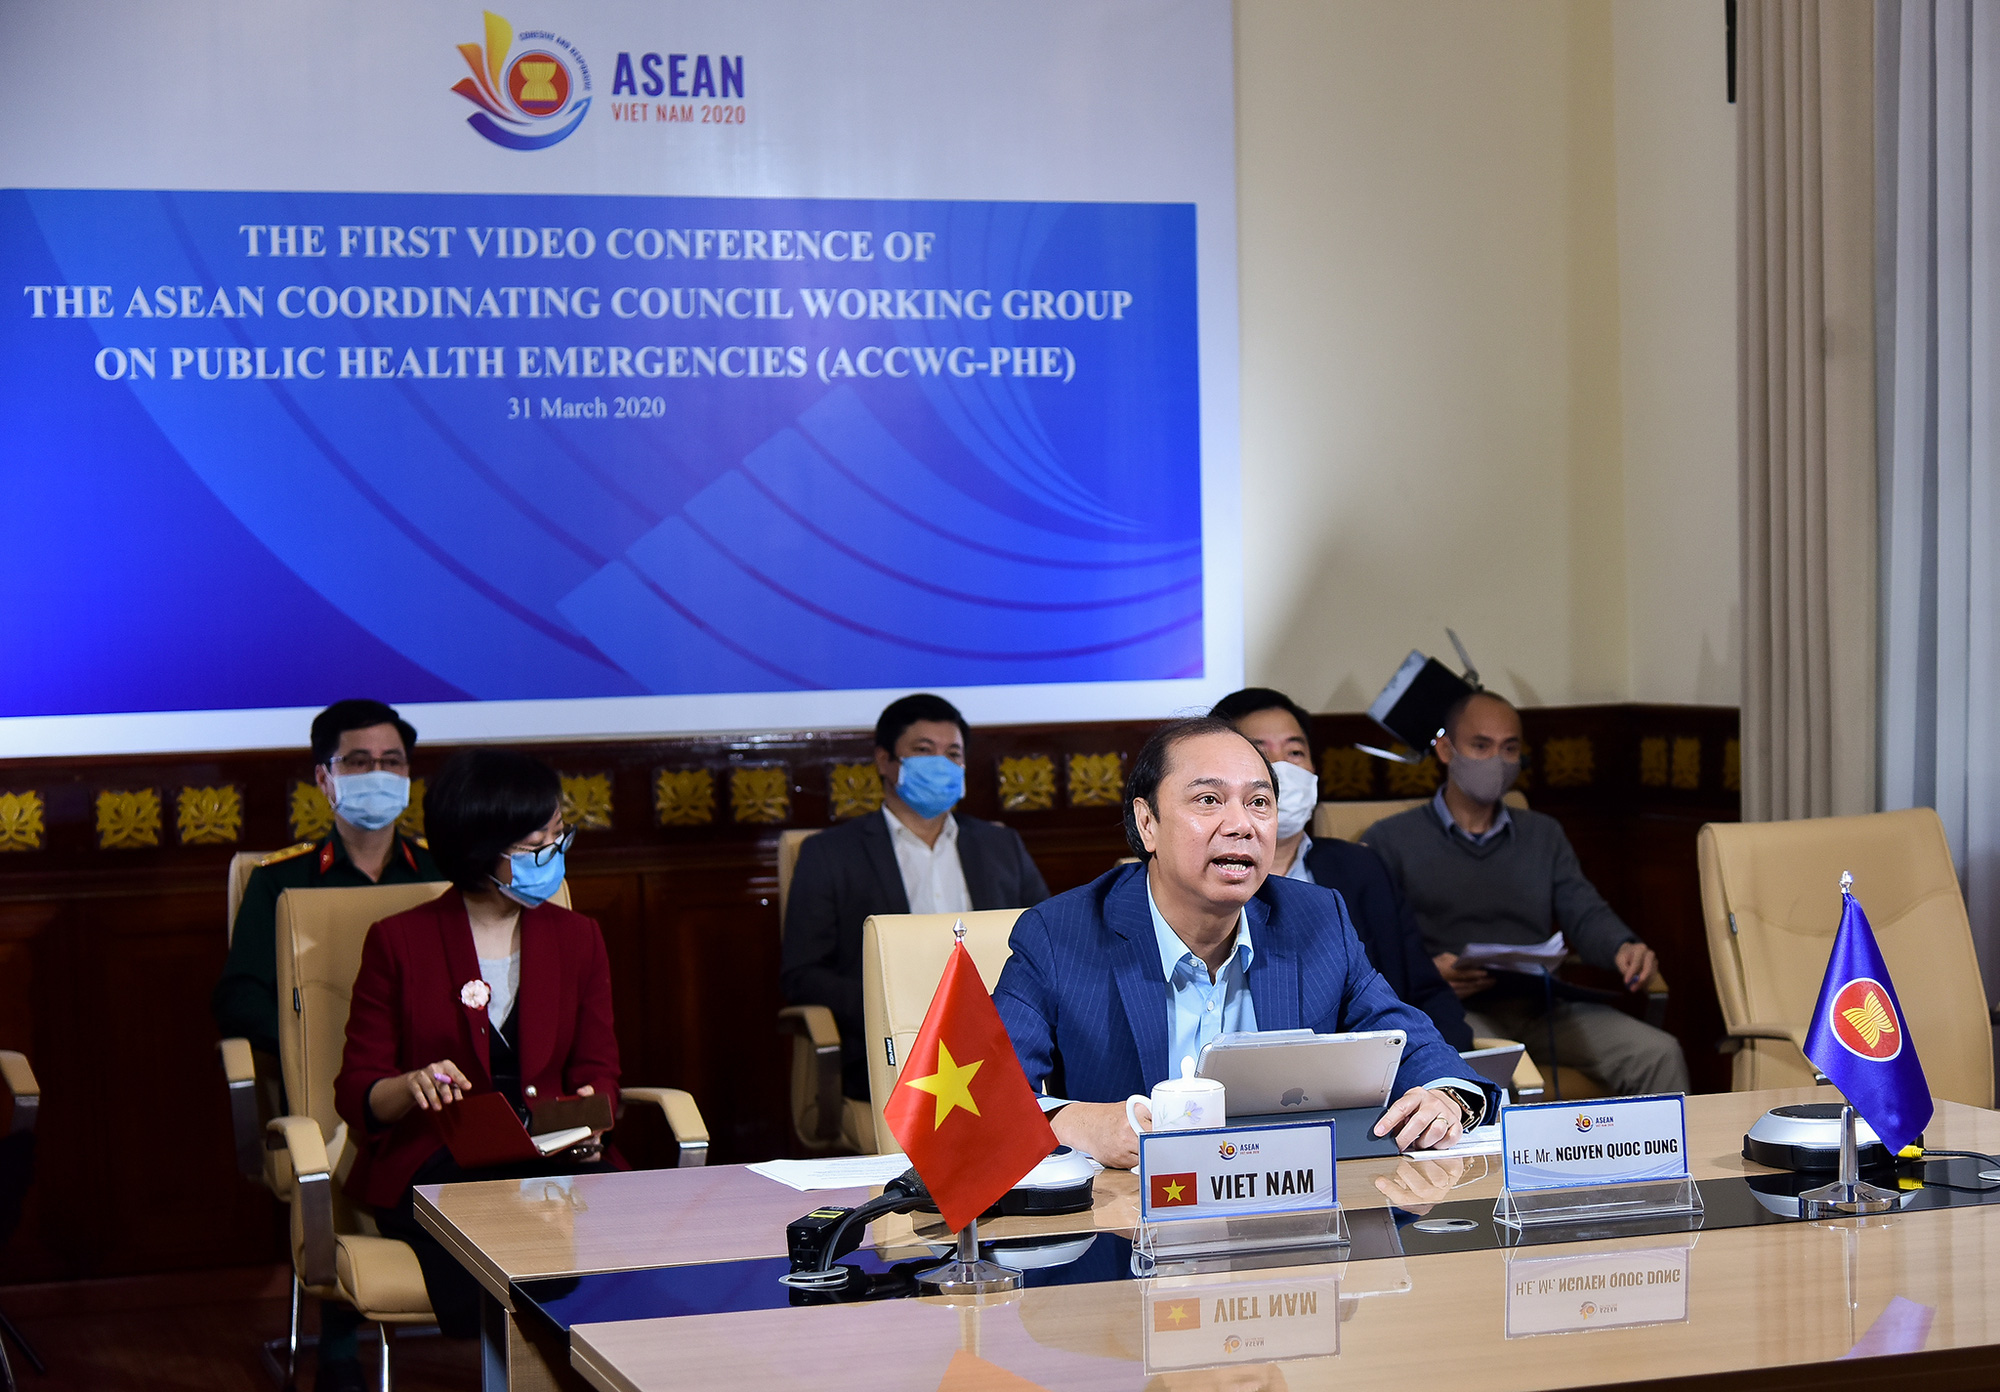 ASEAN pledges to keep market open amid COVID-19 pandemic